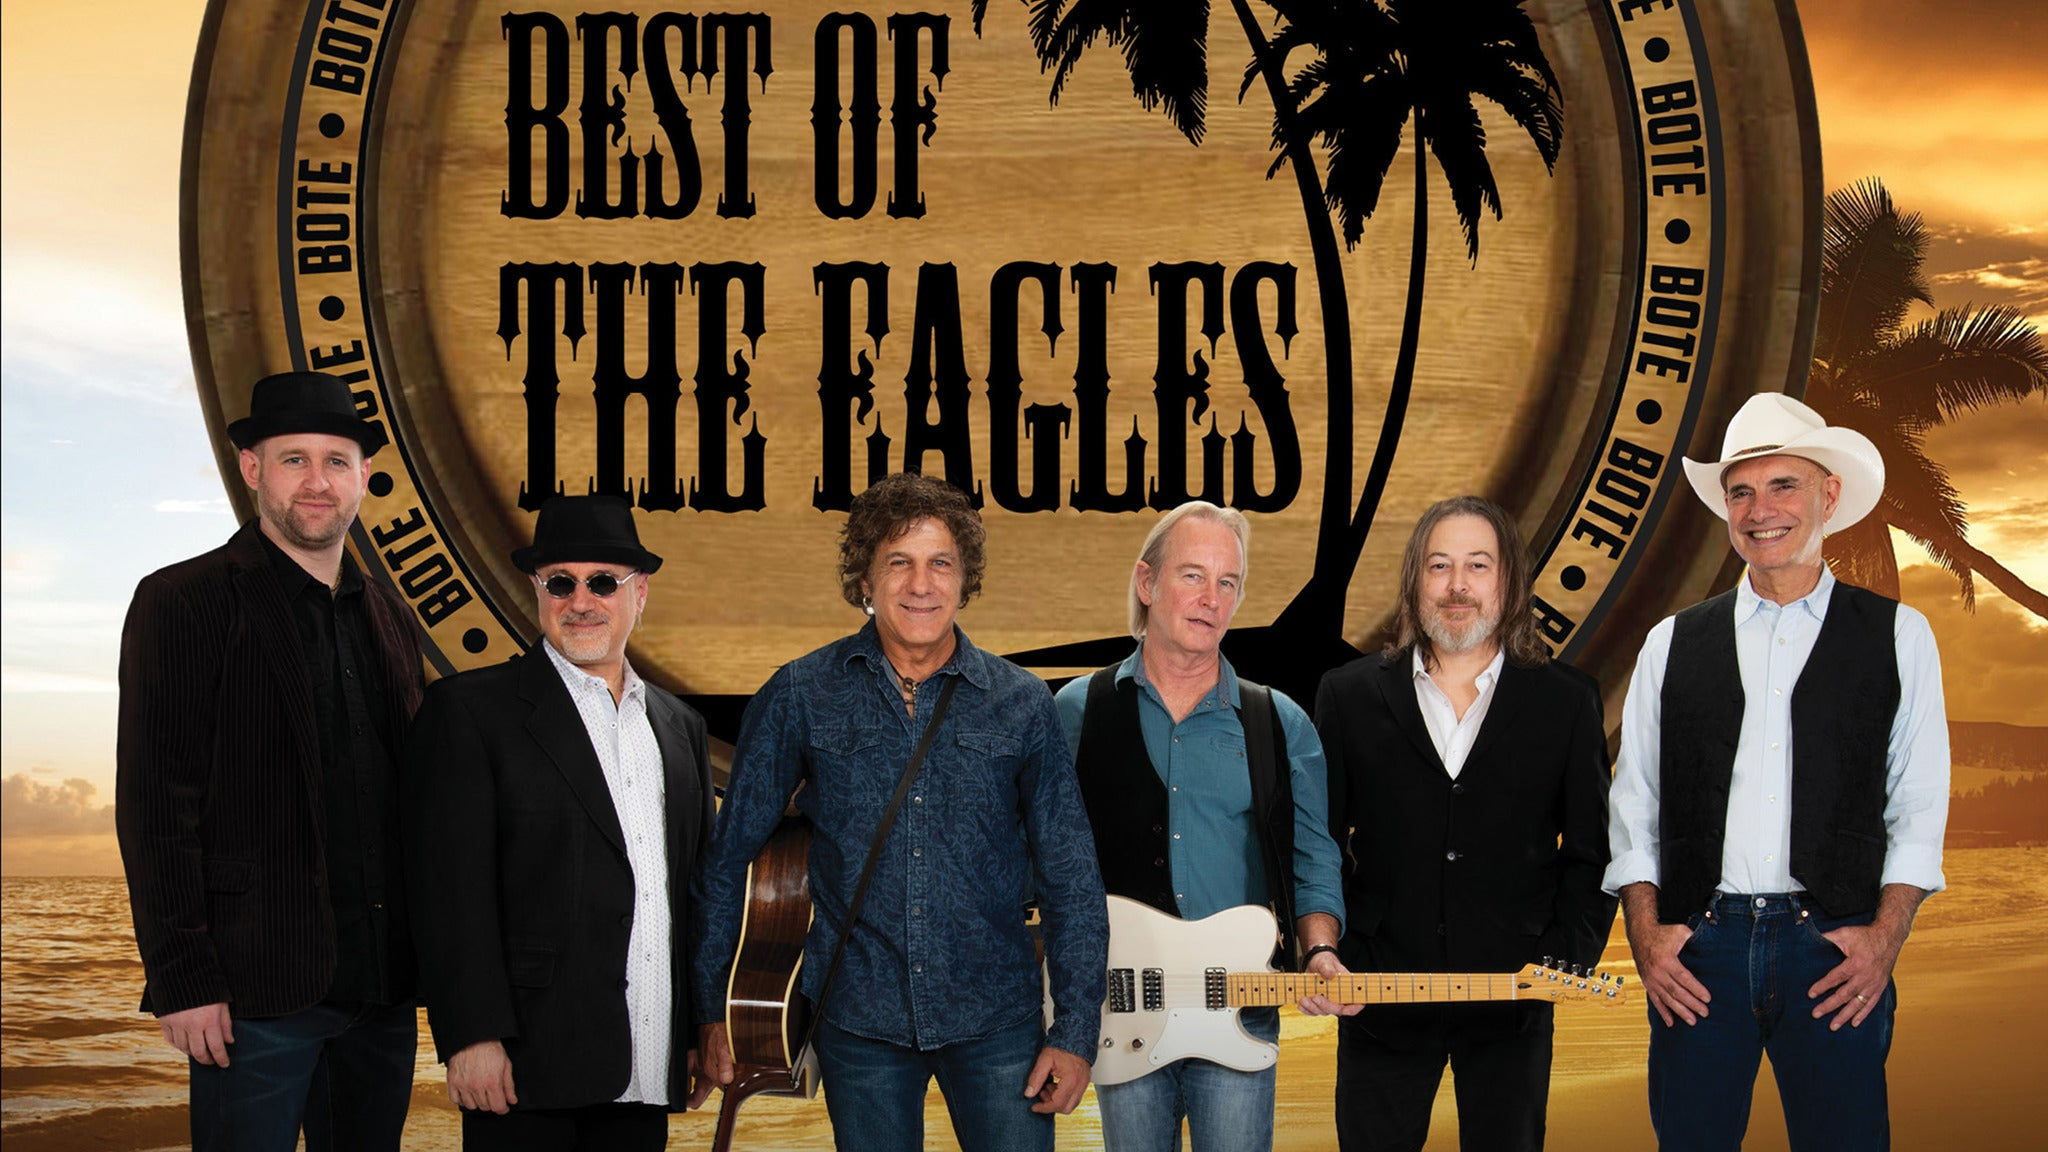 Best Of The Eagles at The Wellmont Theater